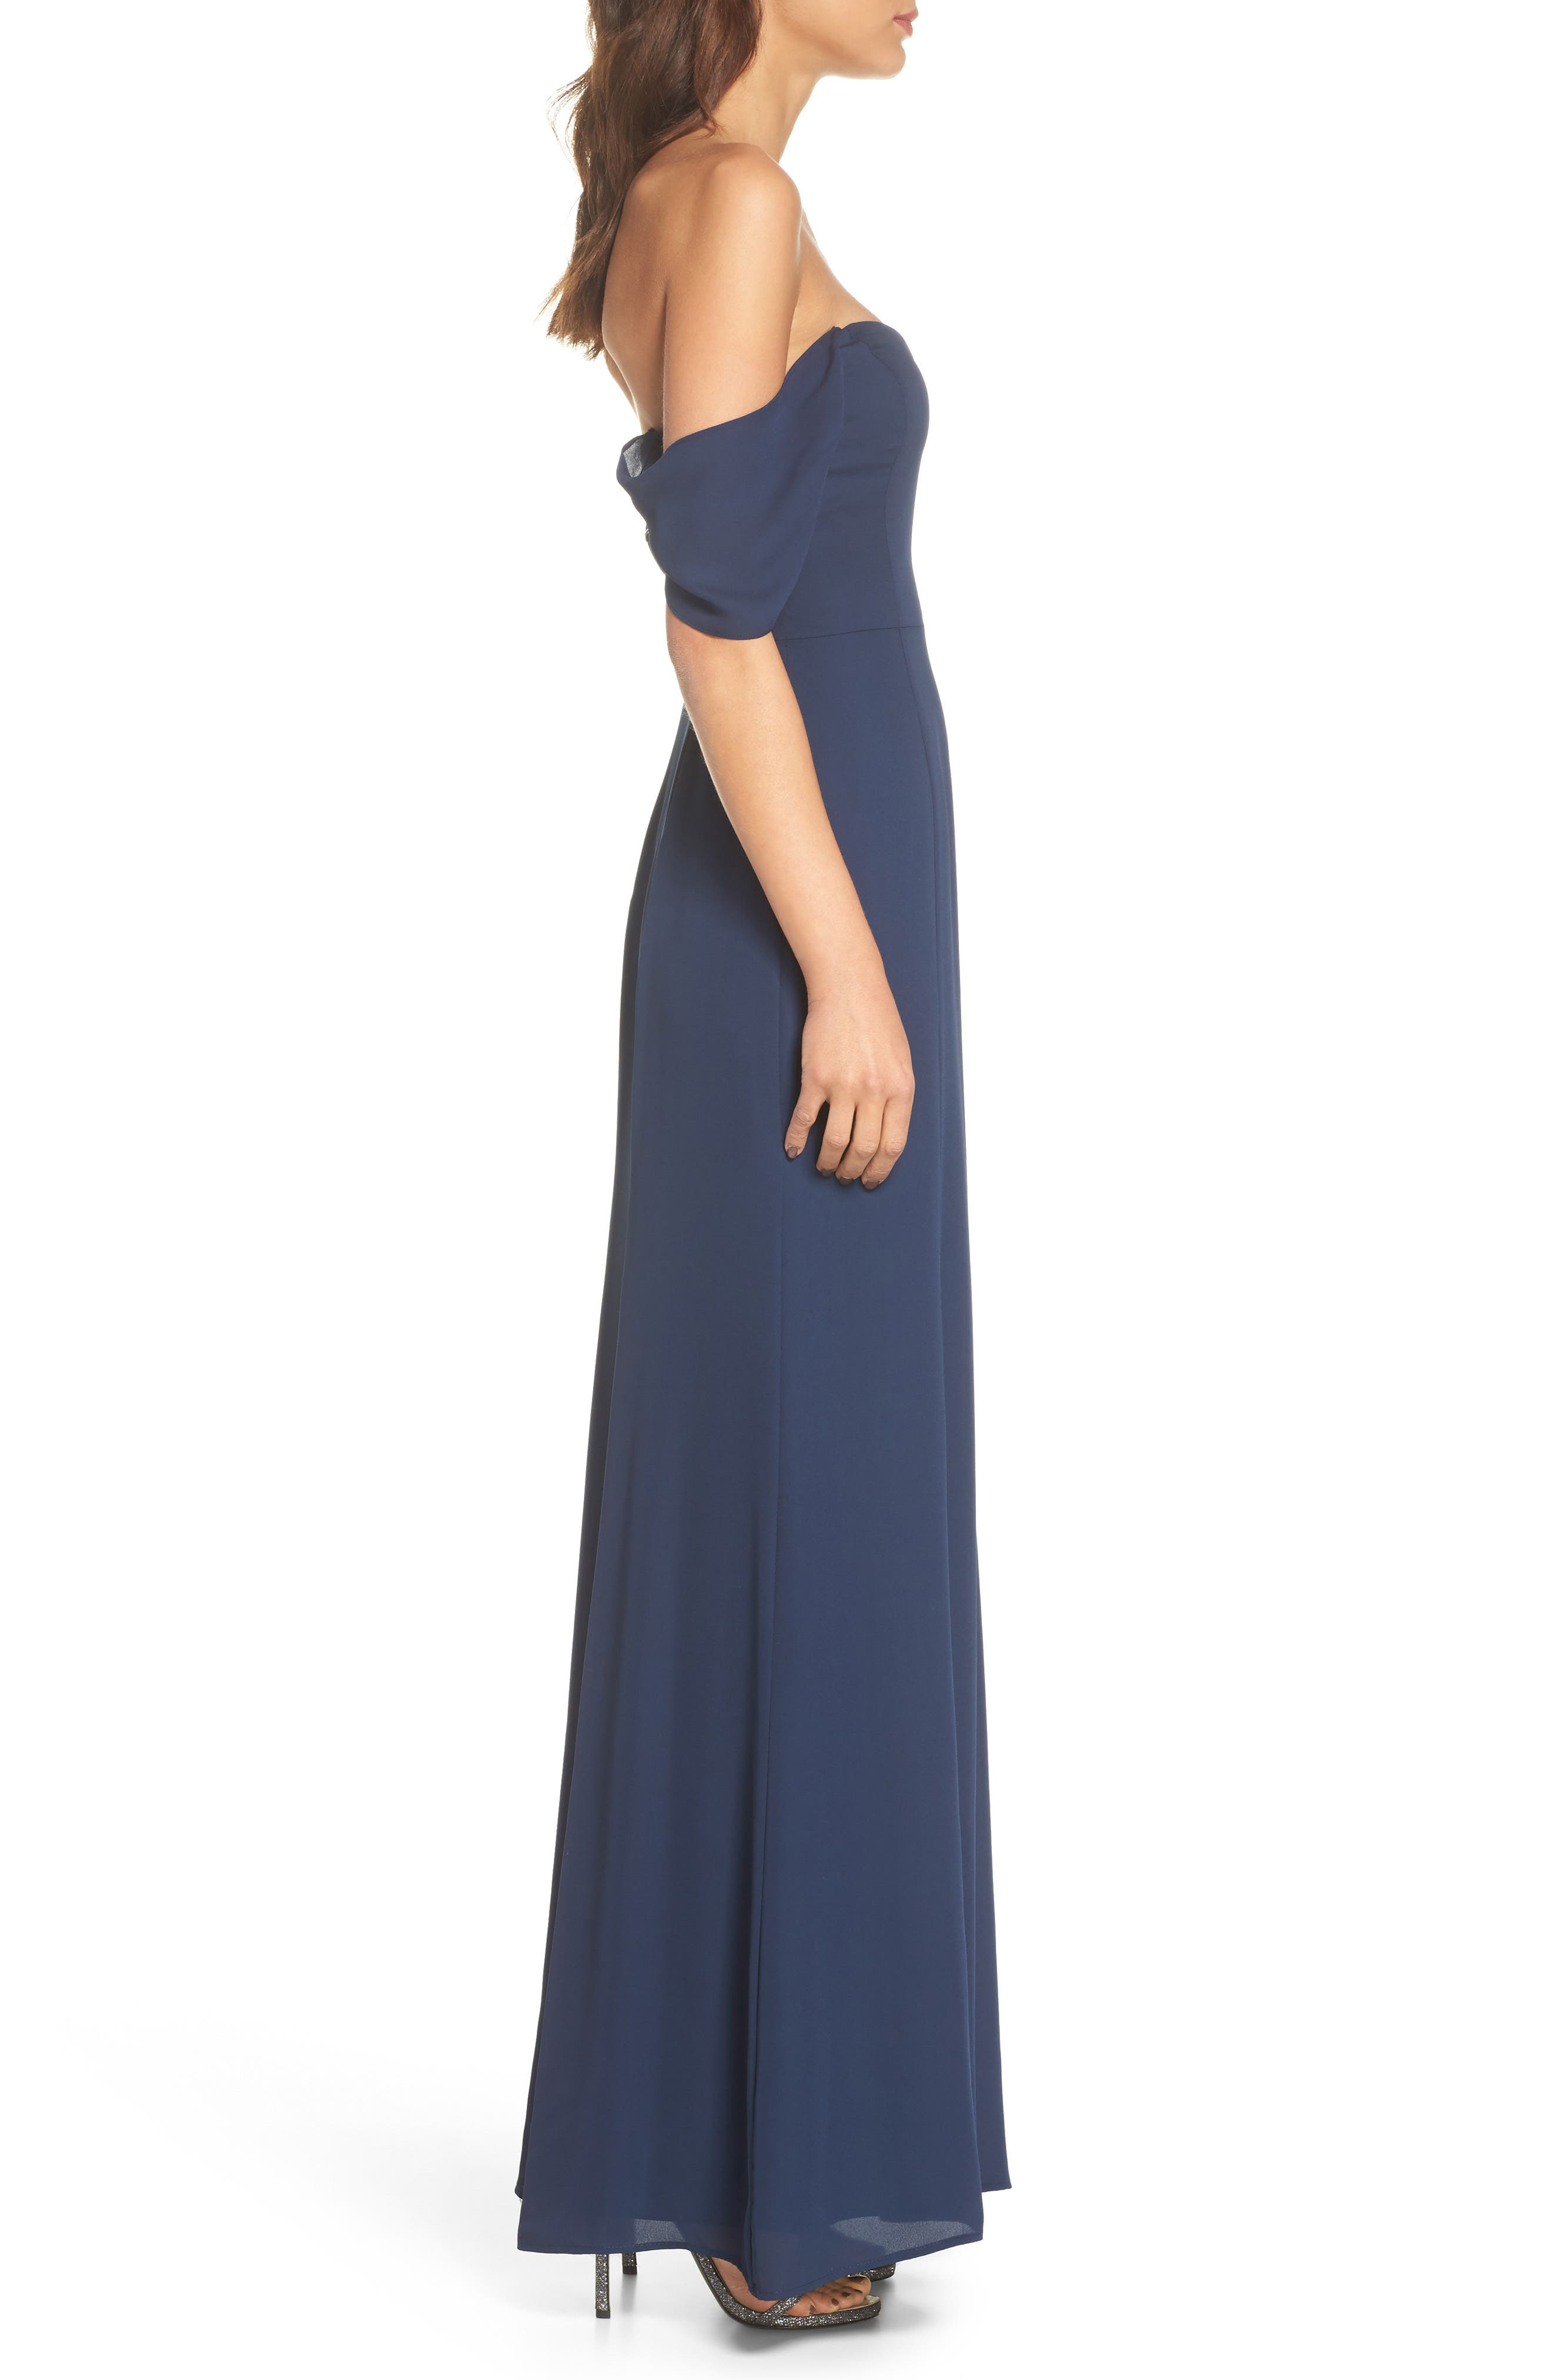 Rachel Off the Shoulder Gored Maxi Dress,                             Alternate thumbnail 3, color,                             Navy